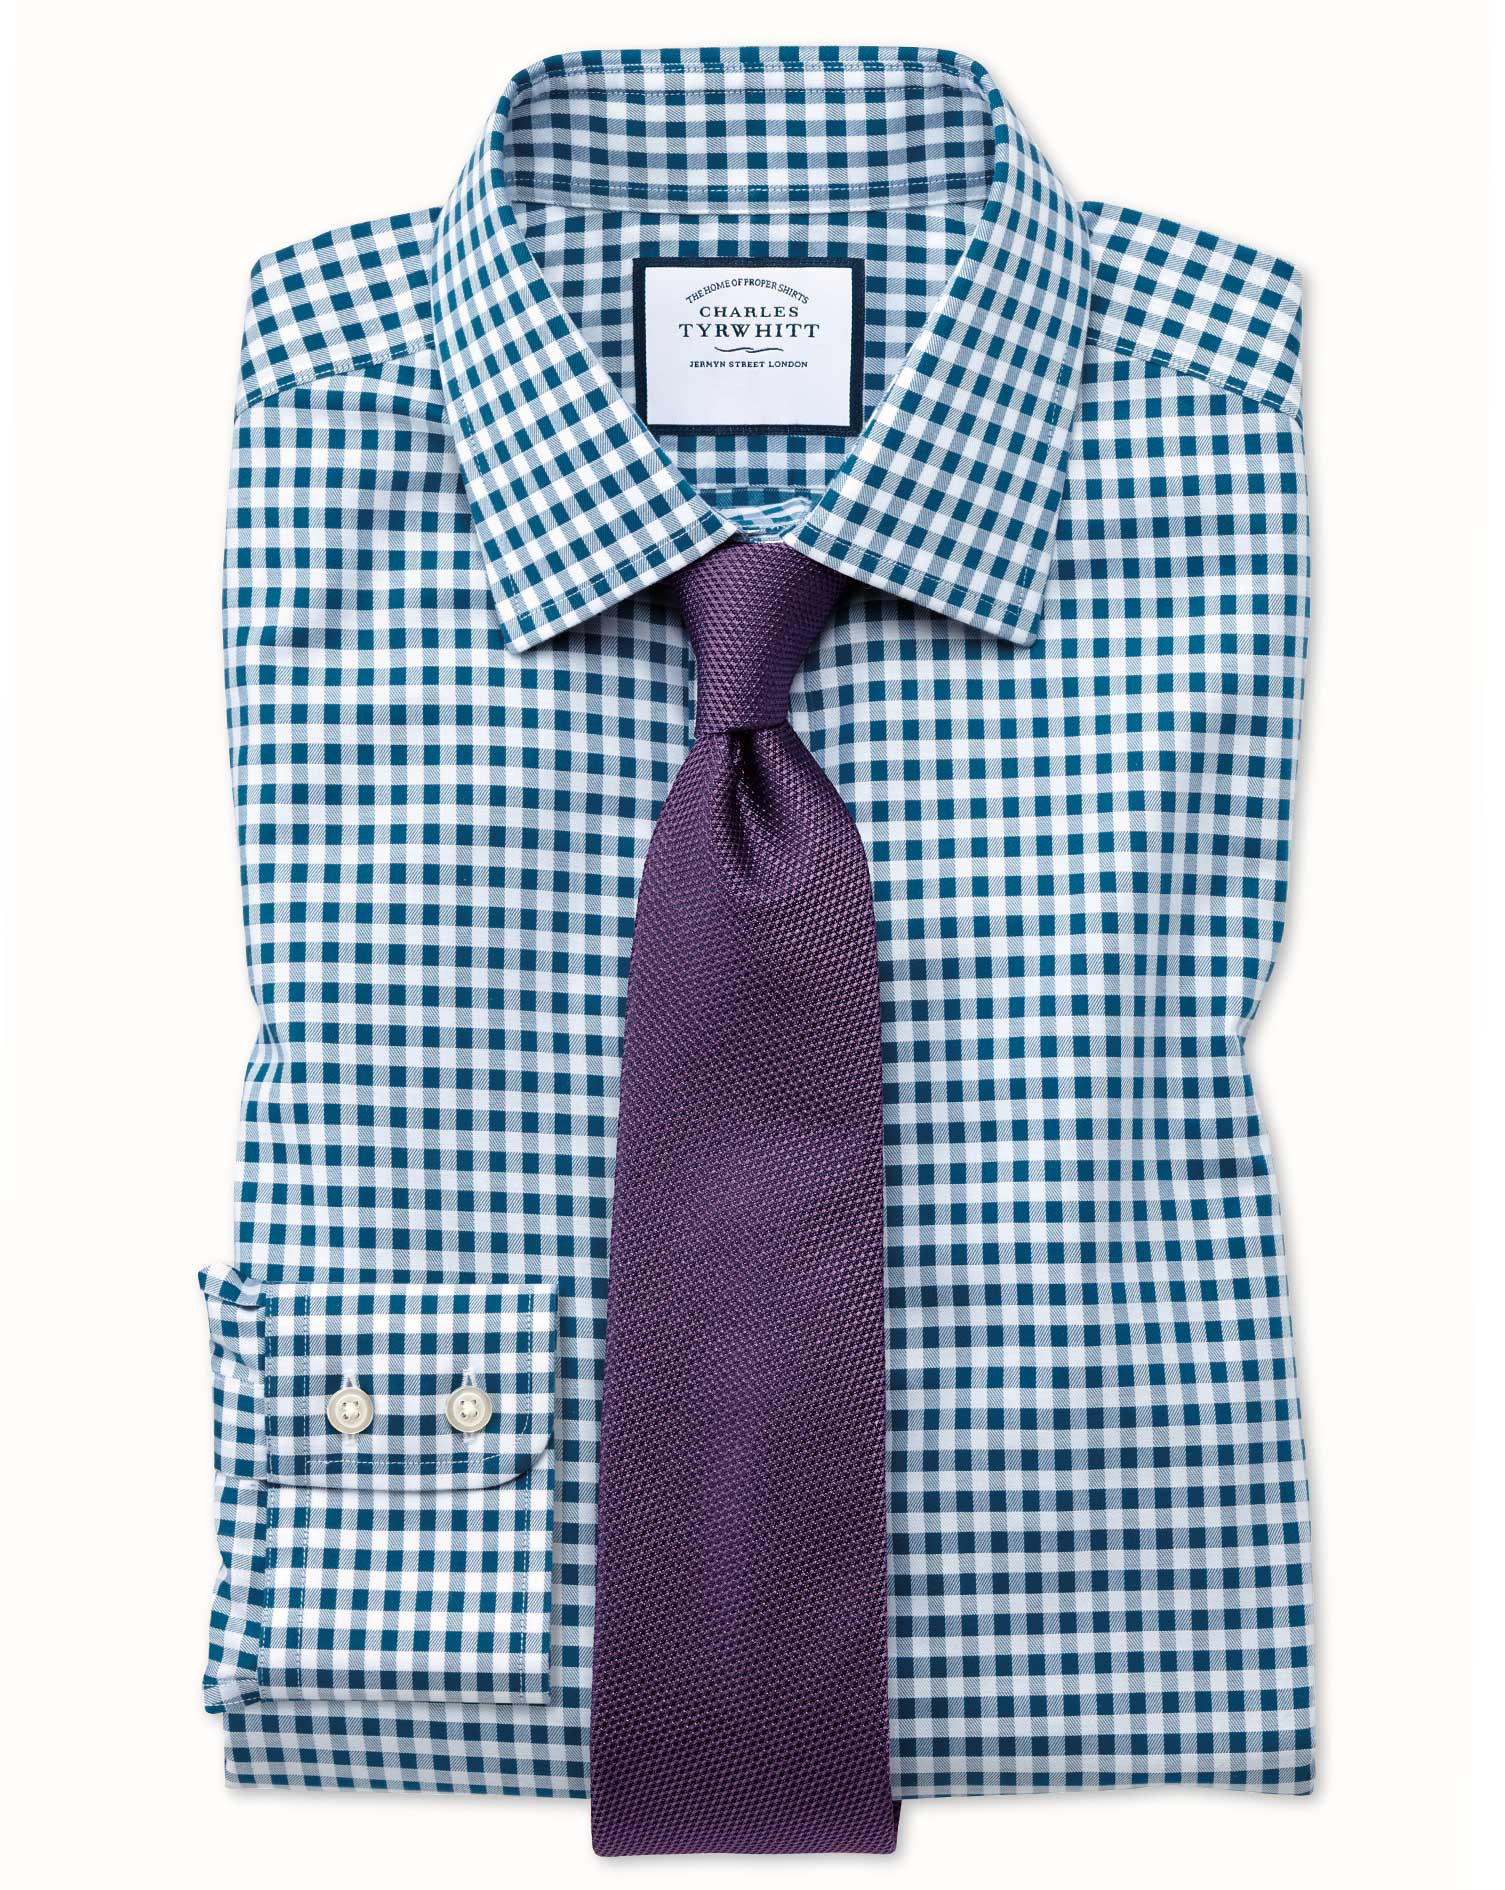 Extra Slim Fit Non-Iron Gingham Teal Cotton Formal Shirt Single Cuff Size 16.5/36 by Charles Tyrwhit